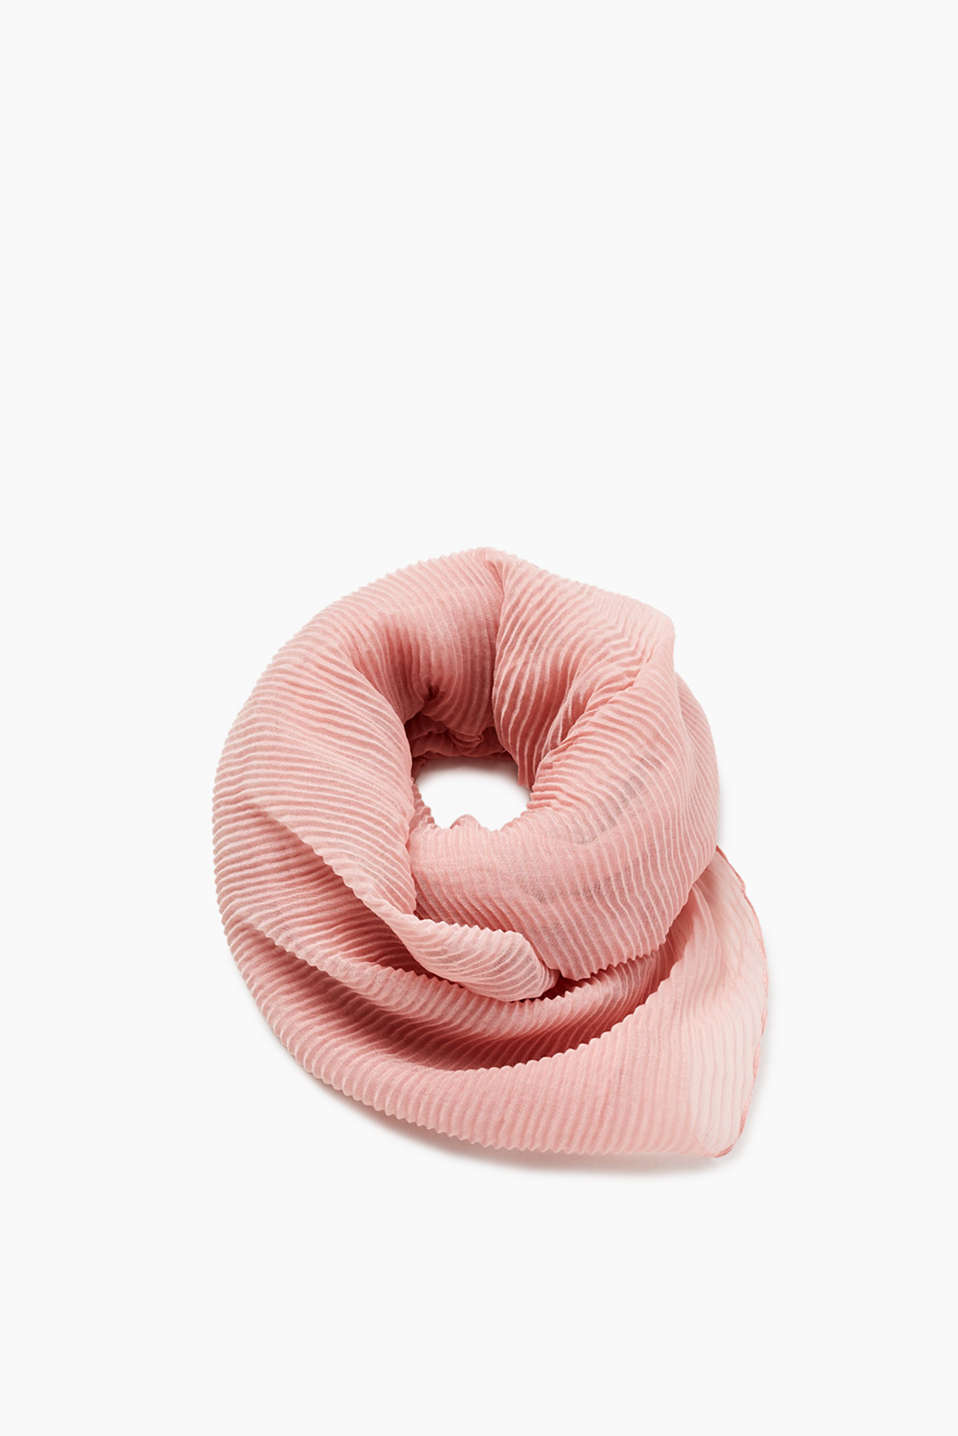 Delicate scarf with fine pleats, semi-sheer